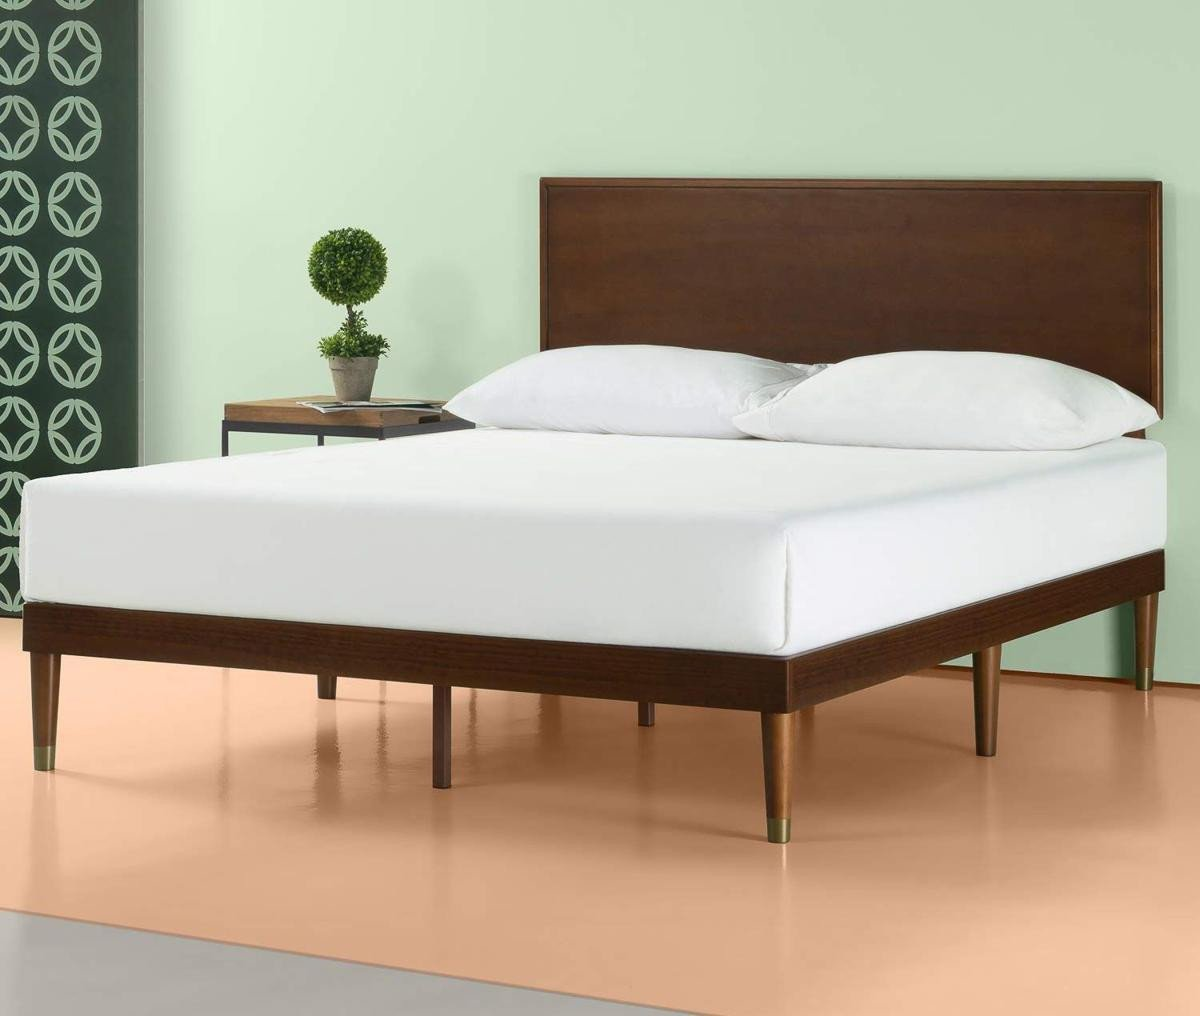 Where to Buy Bedroom Furniture Awesome Get A West Elm Look for Under $300 with This Mid Century Bed